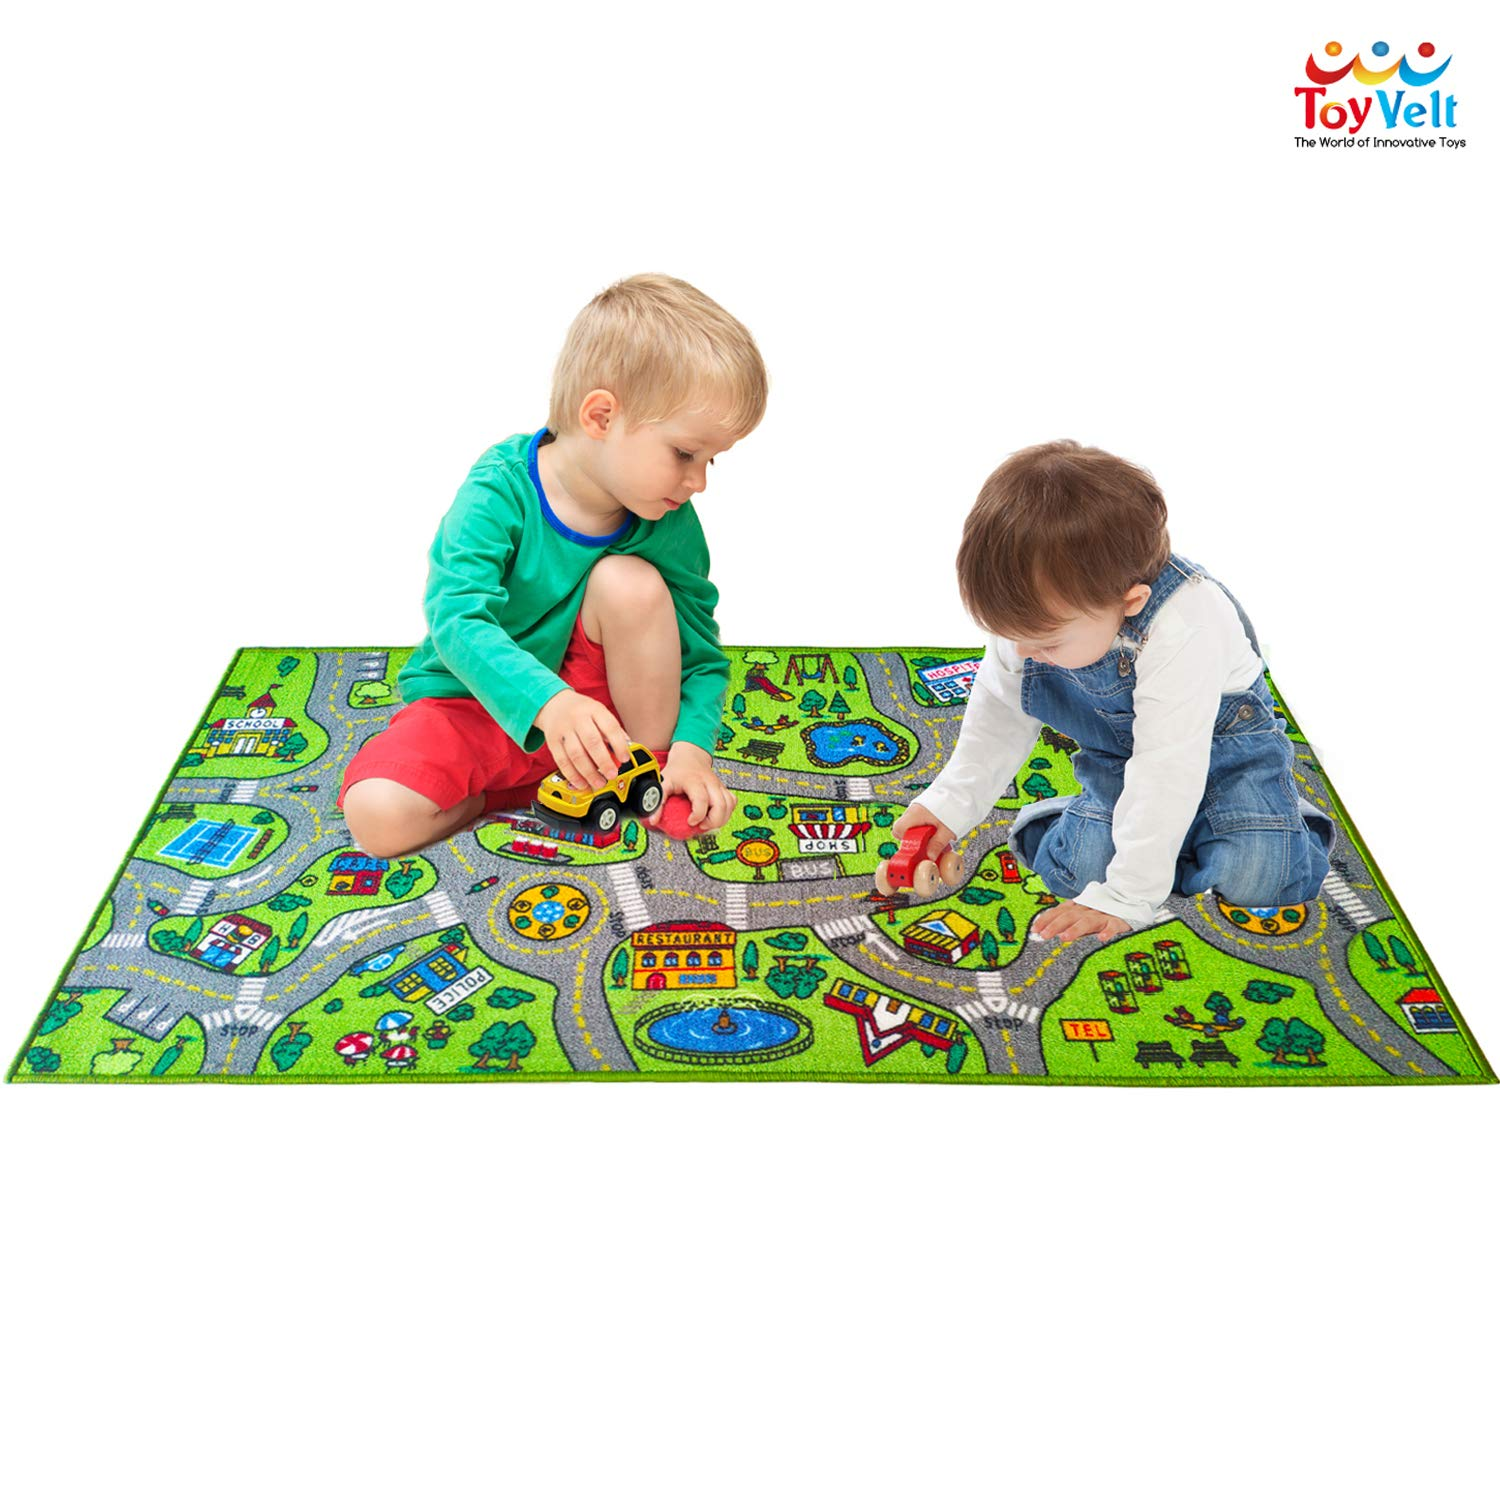 ToyVelt Kids Carpet Playmat Car Rug - City Life Educational Road Traffic Carpet Multi Color Play Mat - Large 60'' x 32'' Best Kids Rugs for Playroom & Kid Bedroom - for Ages 3-12 Years Old by toyvelt